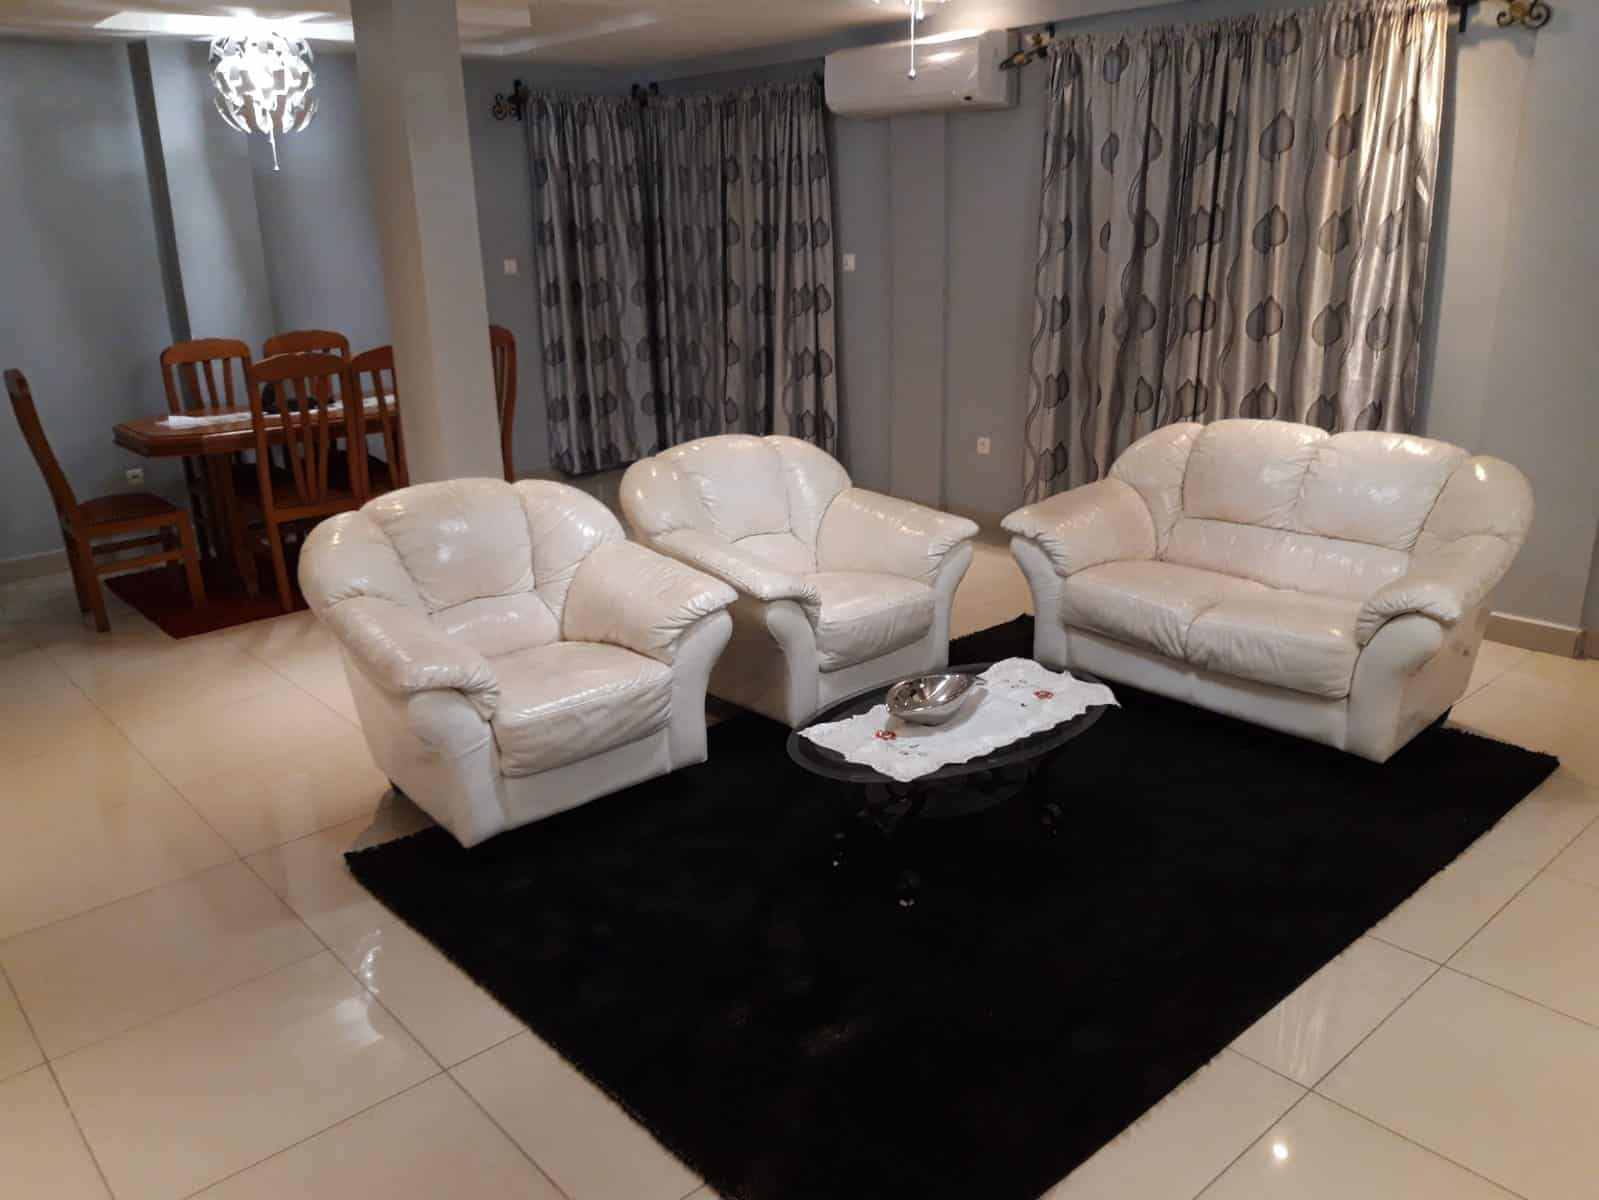 House (Villa) to rent - Douala, Logpom, Station Tradex - 1 living room(s), 3 bedroom(s), 2 bathroom(s) - 55 000 FCFA / month